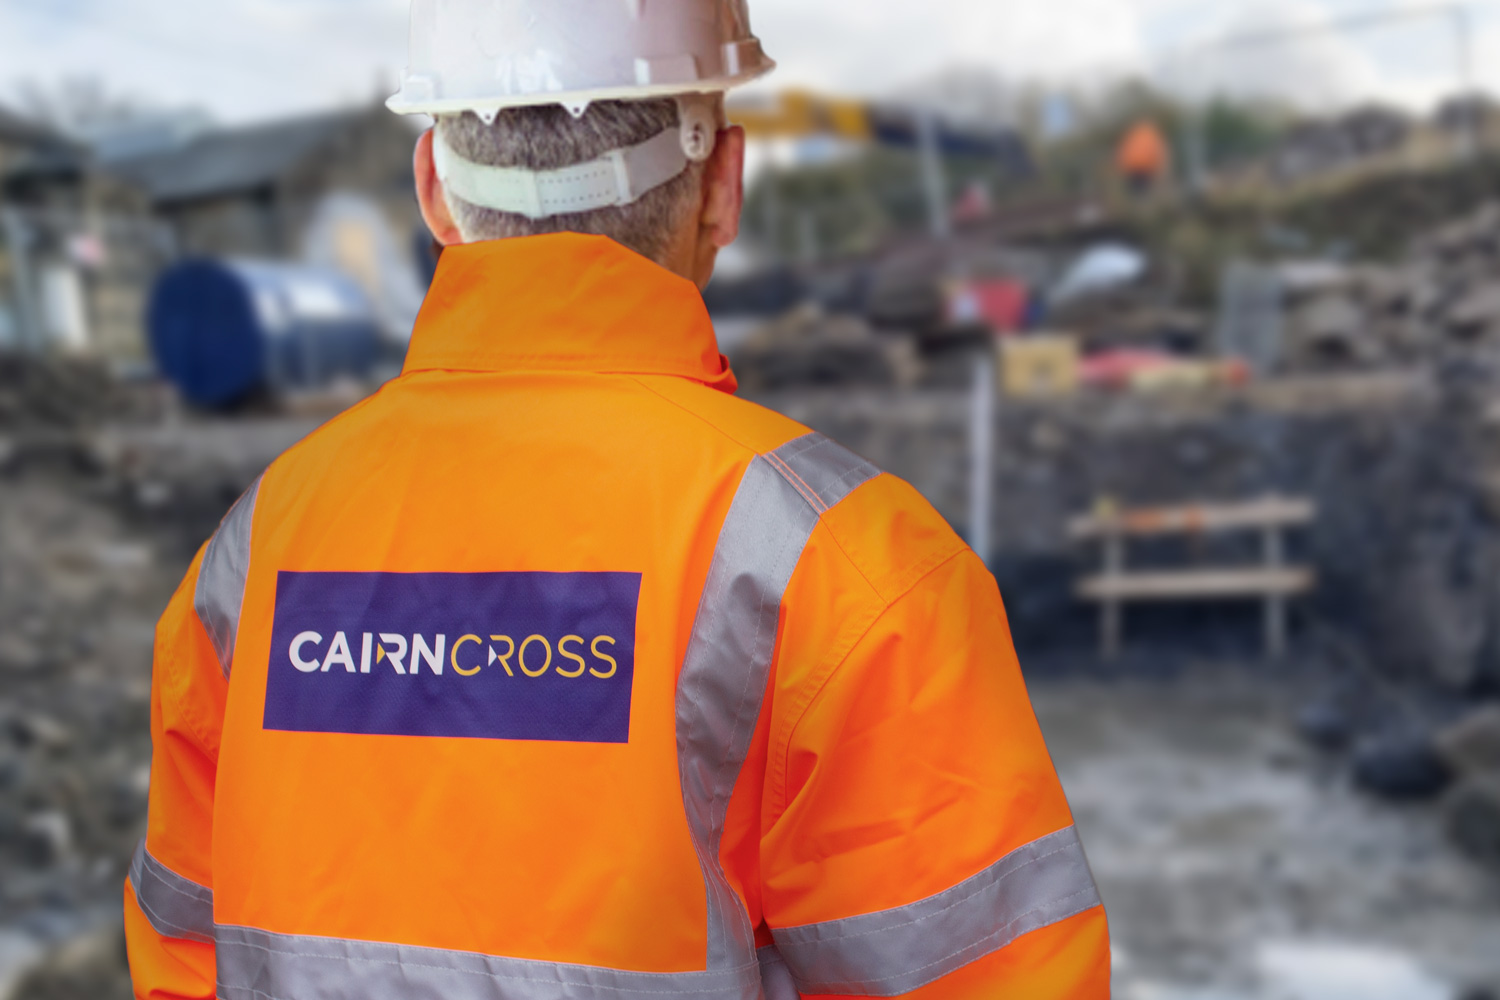 CAIRN CROSS UNVEIL NEW IDENTITY TO 'SHAPE FUTURE INFRASTRUCTURE'